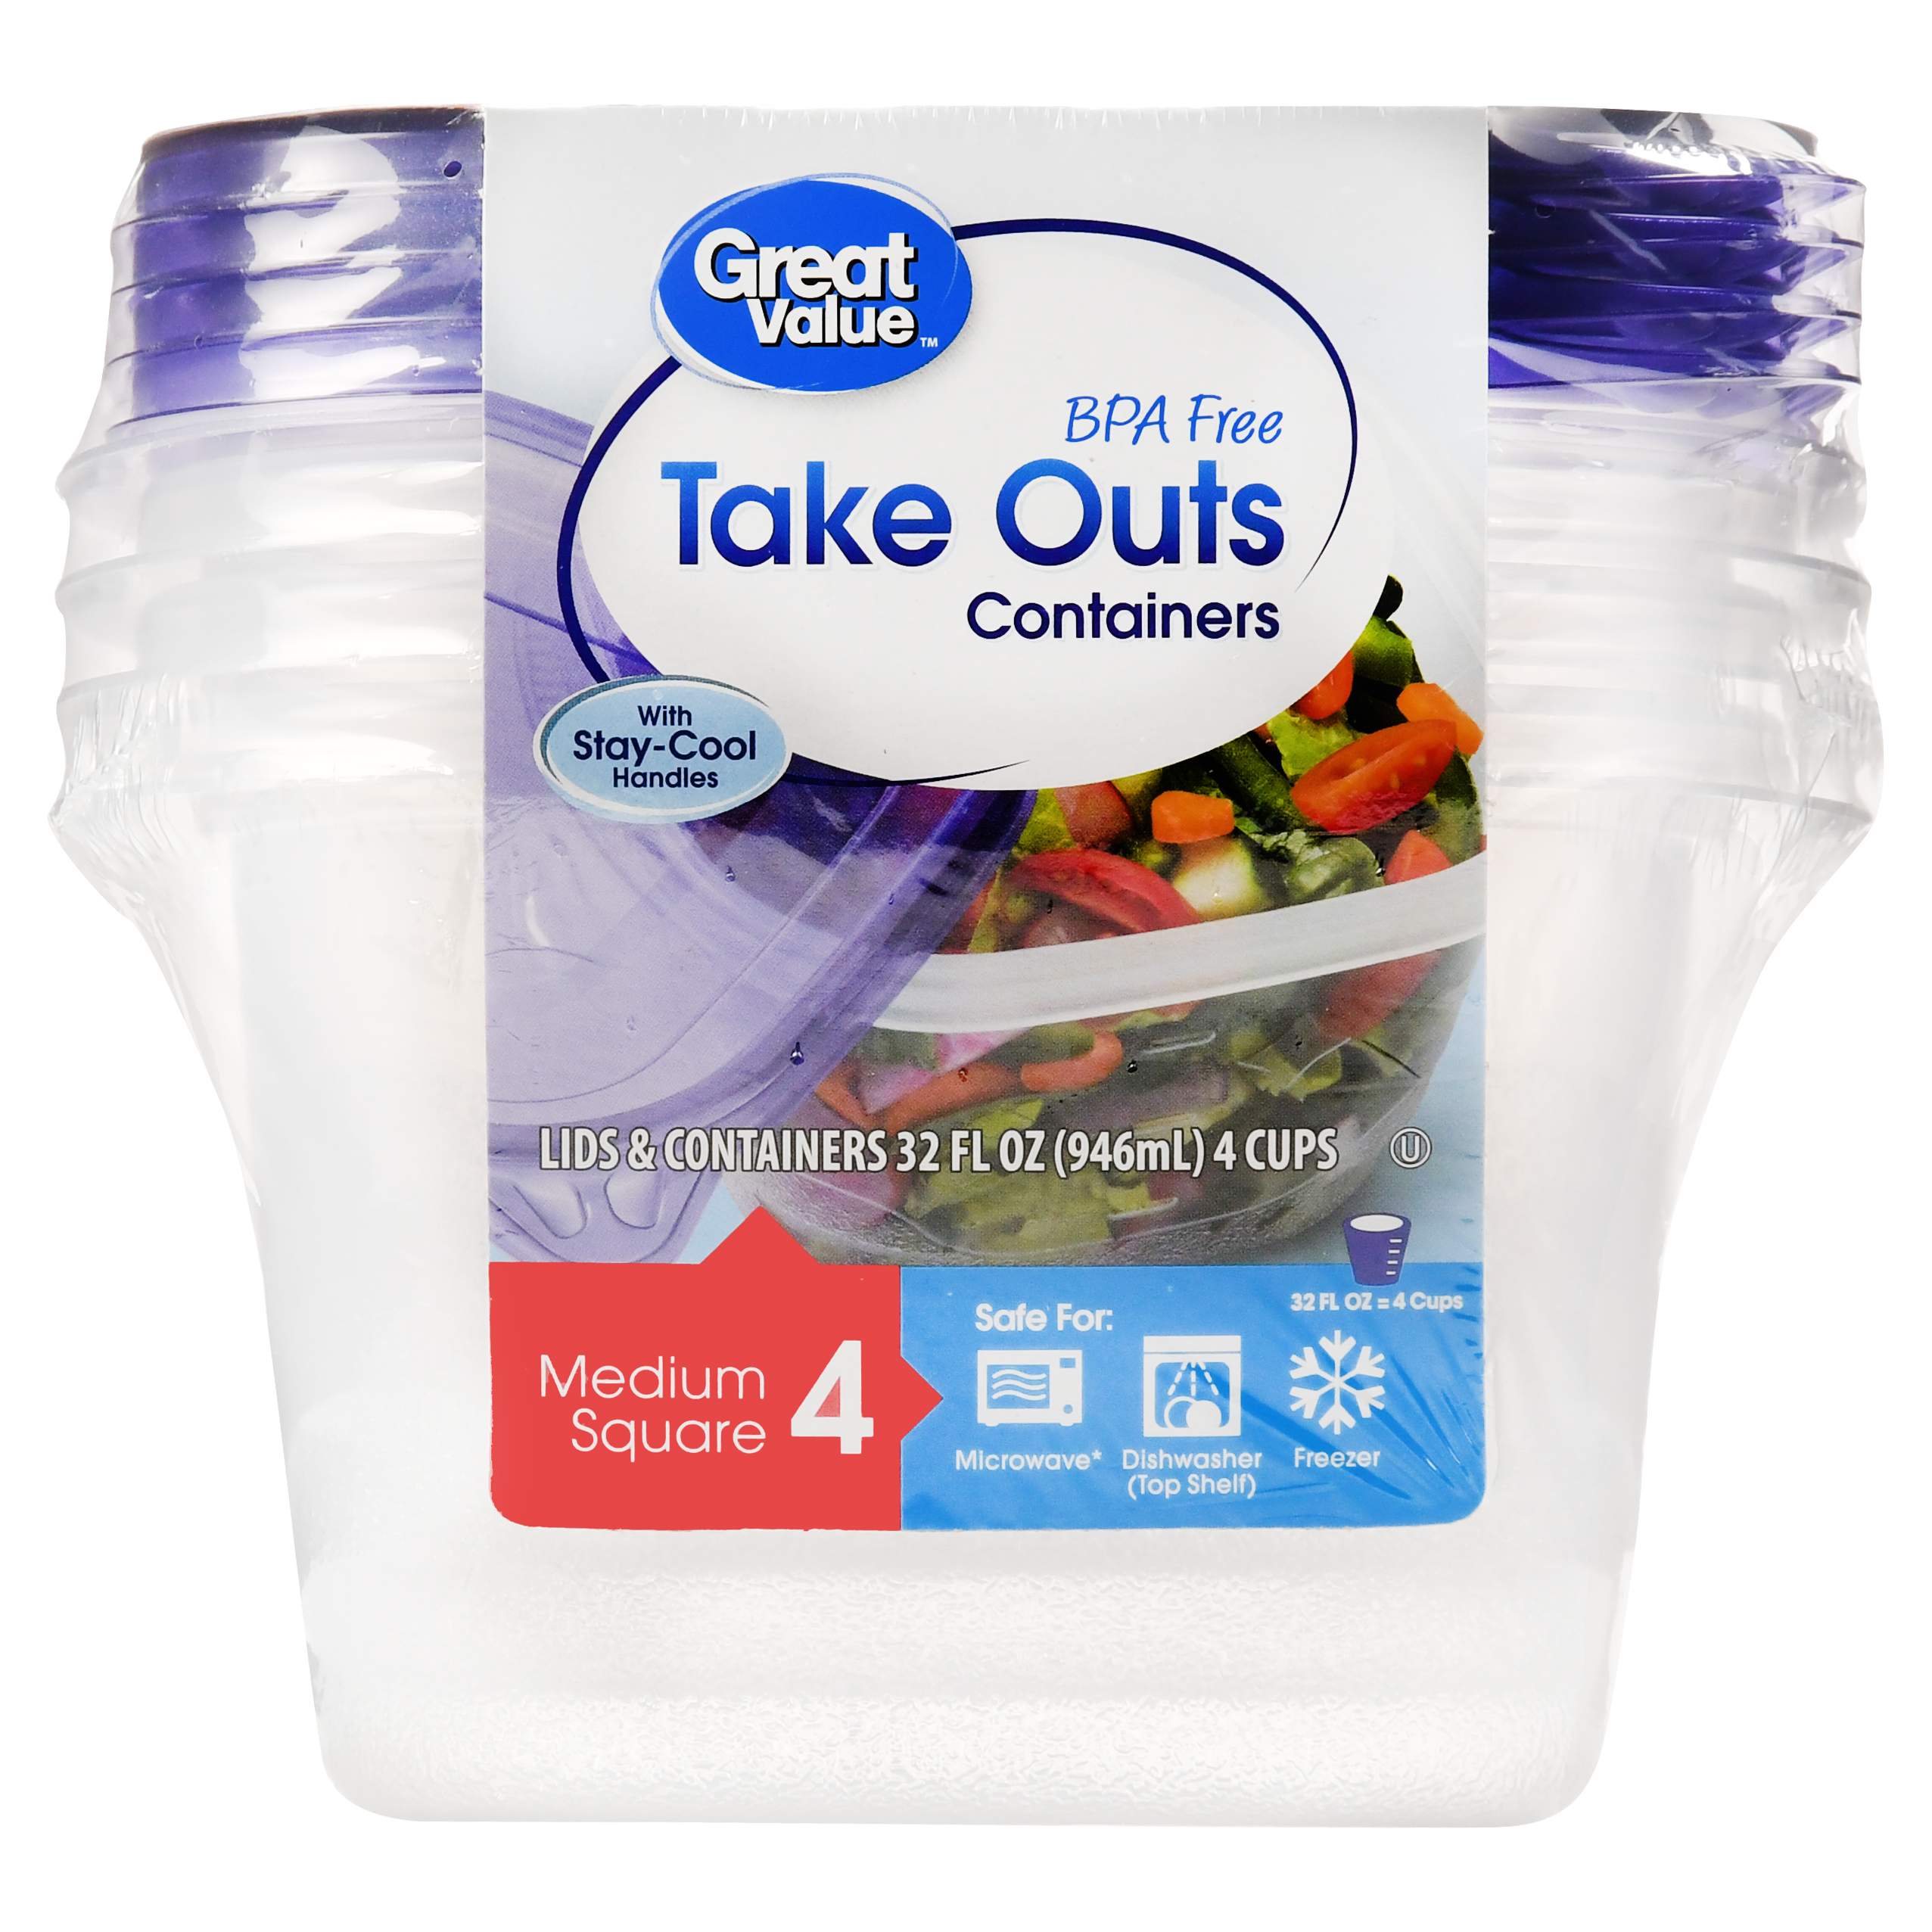 Great Value Take Out Food Storage Containers, Medium Square, 4 Count